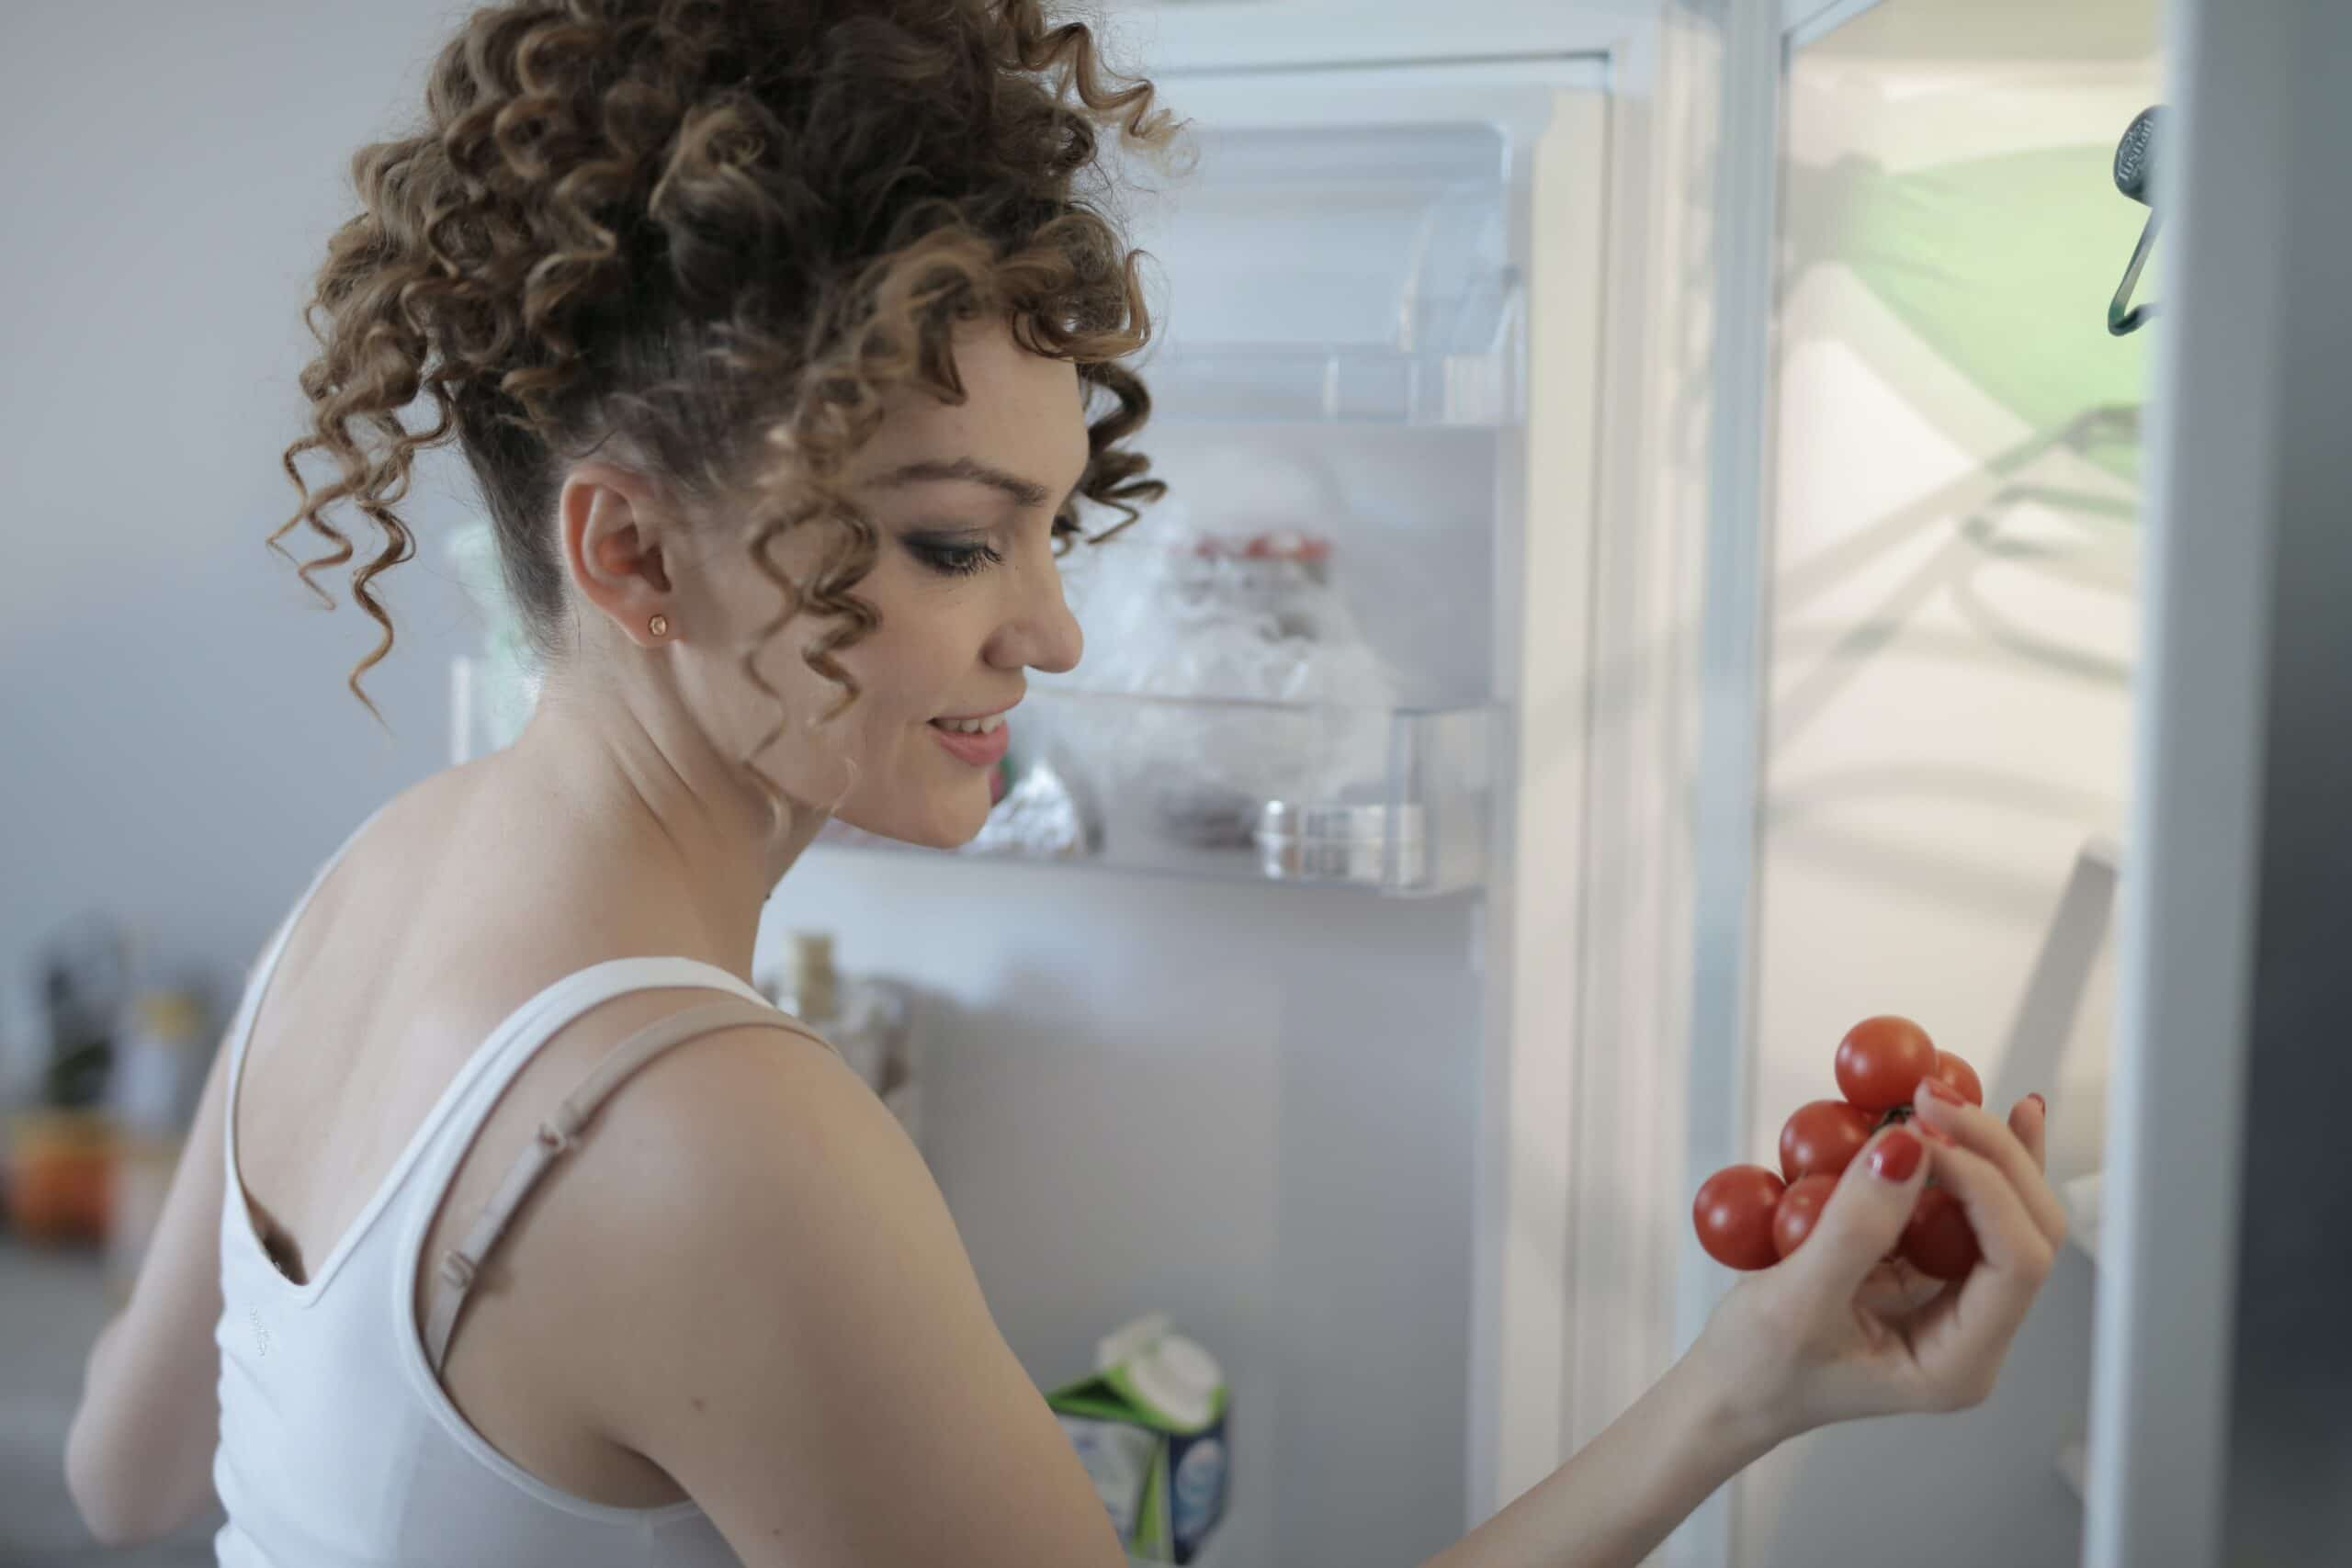 woman looking at tomatoes in fridge scaled